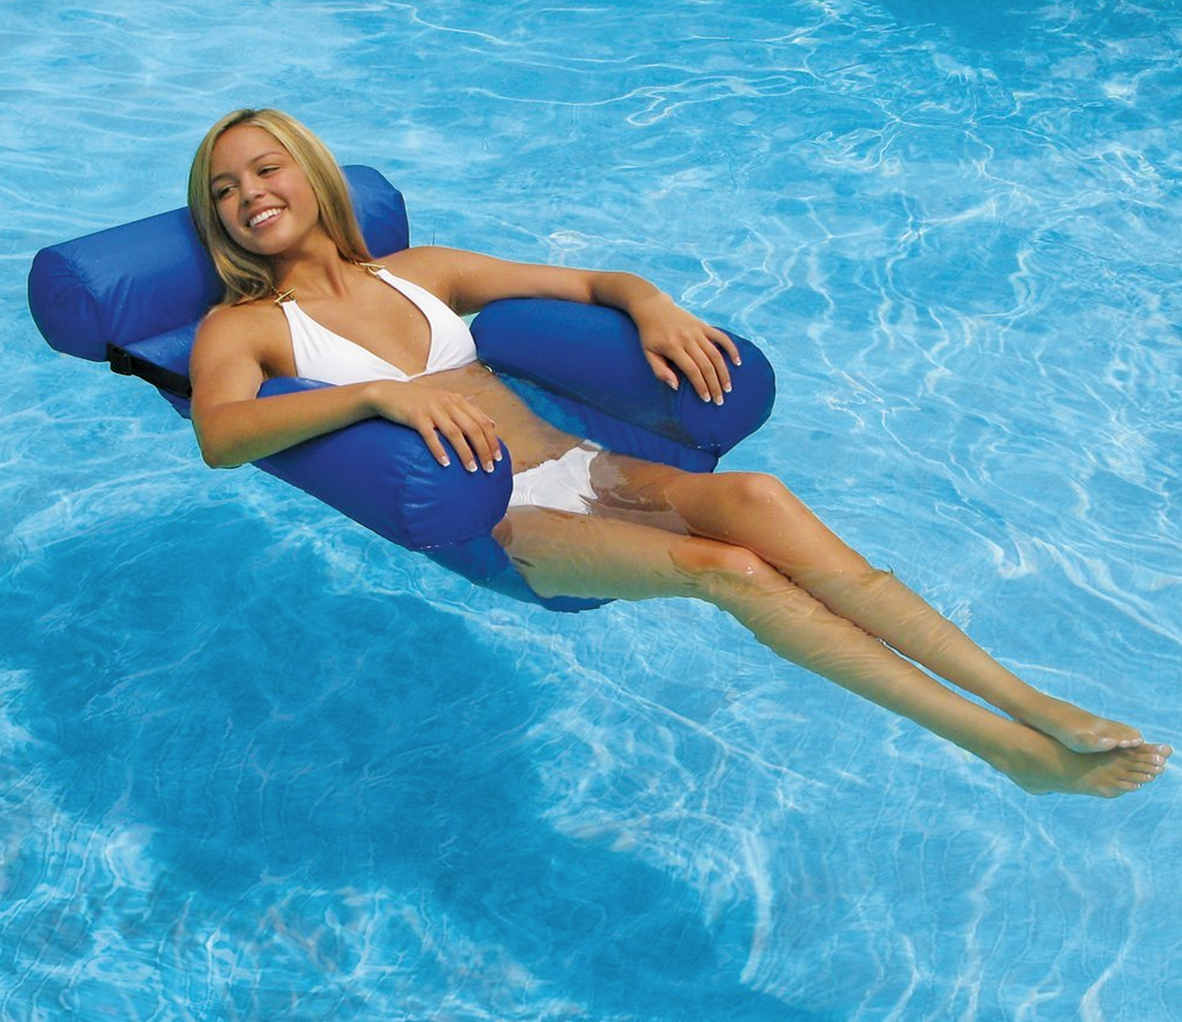 Poolmaster Water Chair Lounger Only $19.99 (Reg. $37.44!)